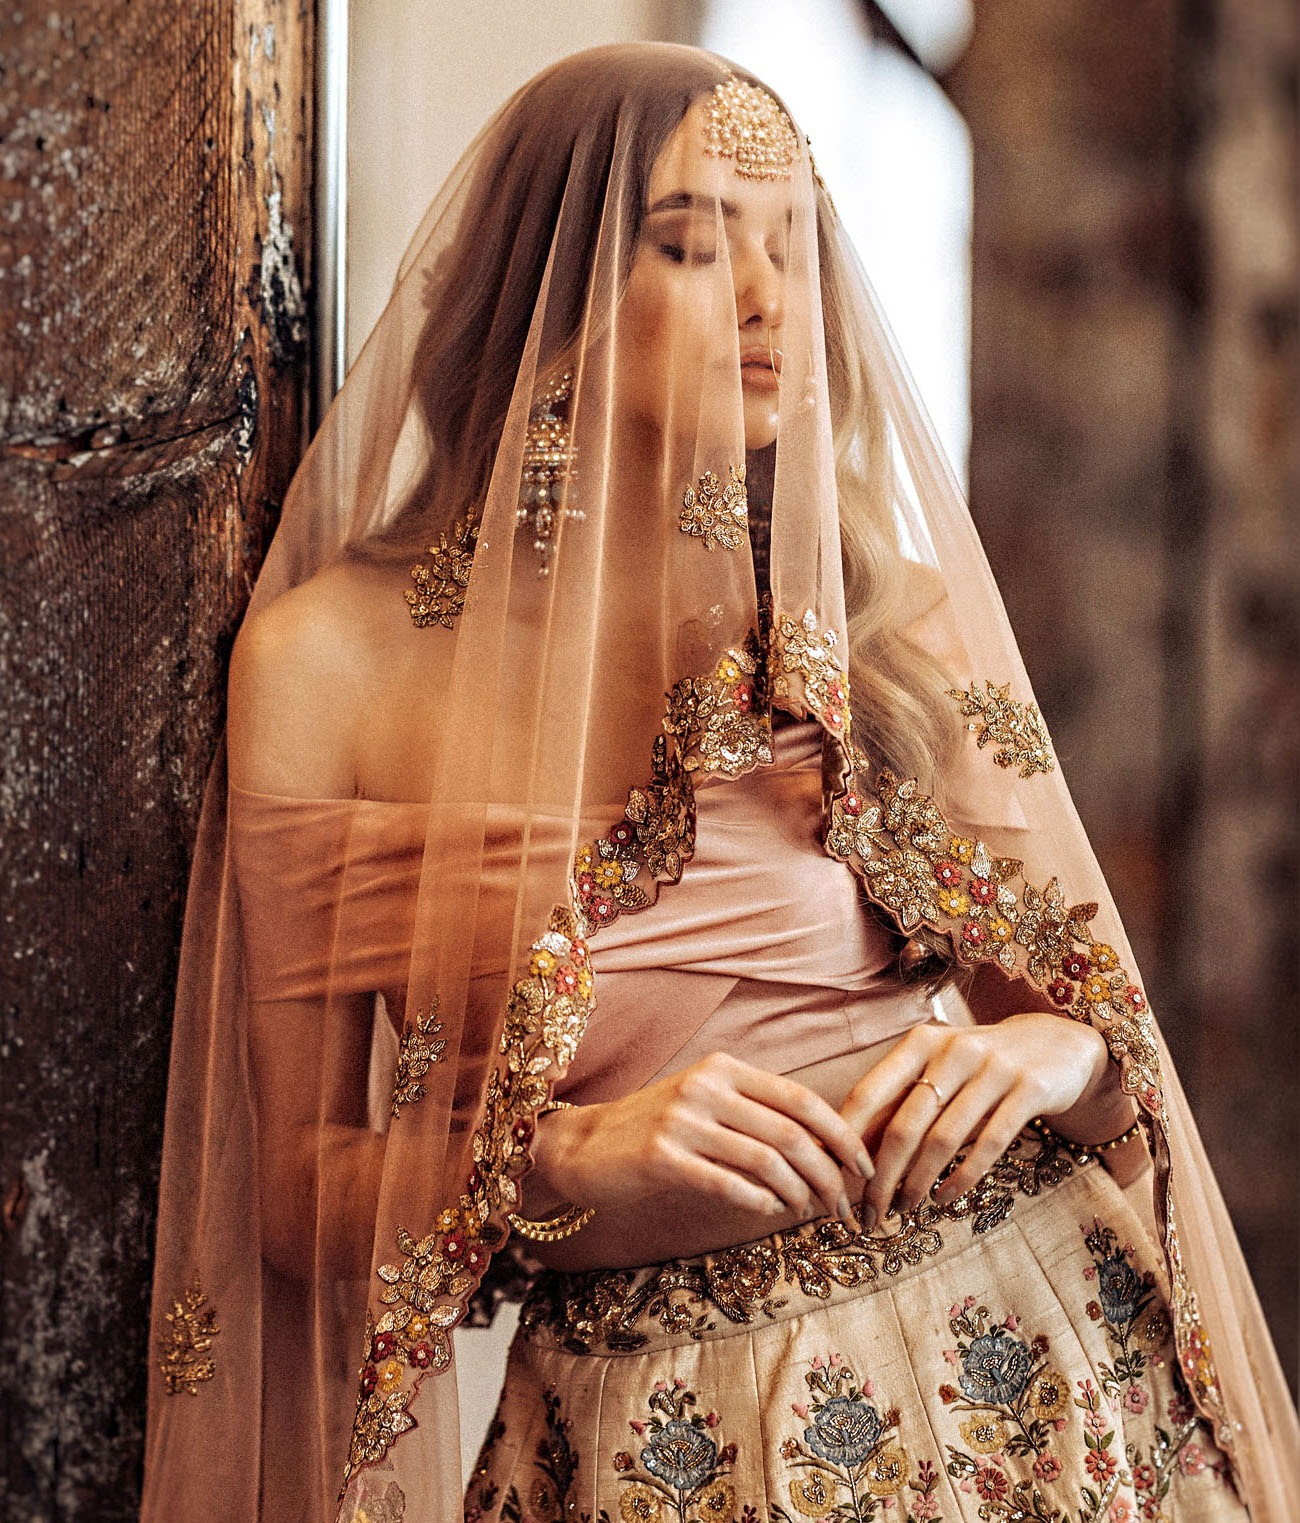 bride wearing blush tone traditional Indian wedding attire and jewelry